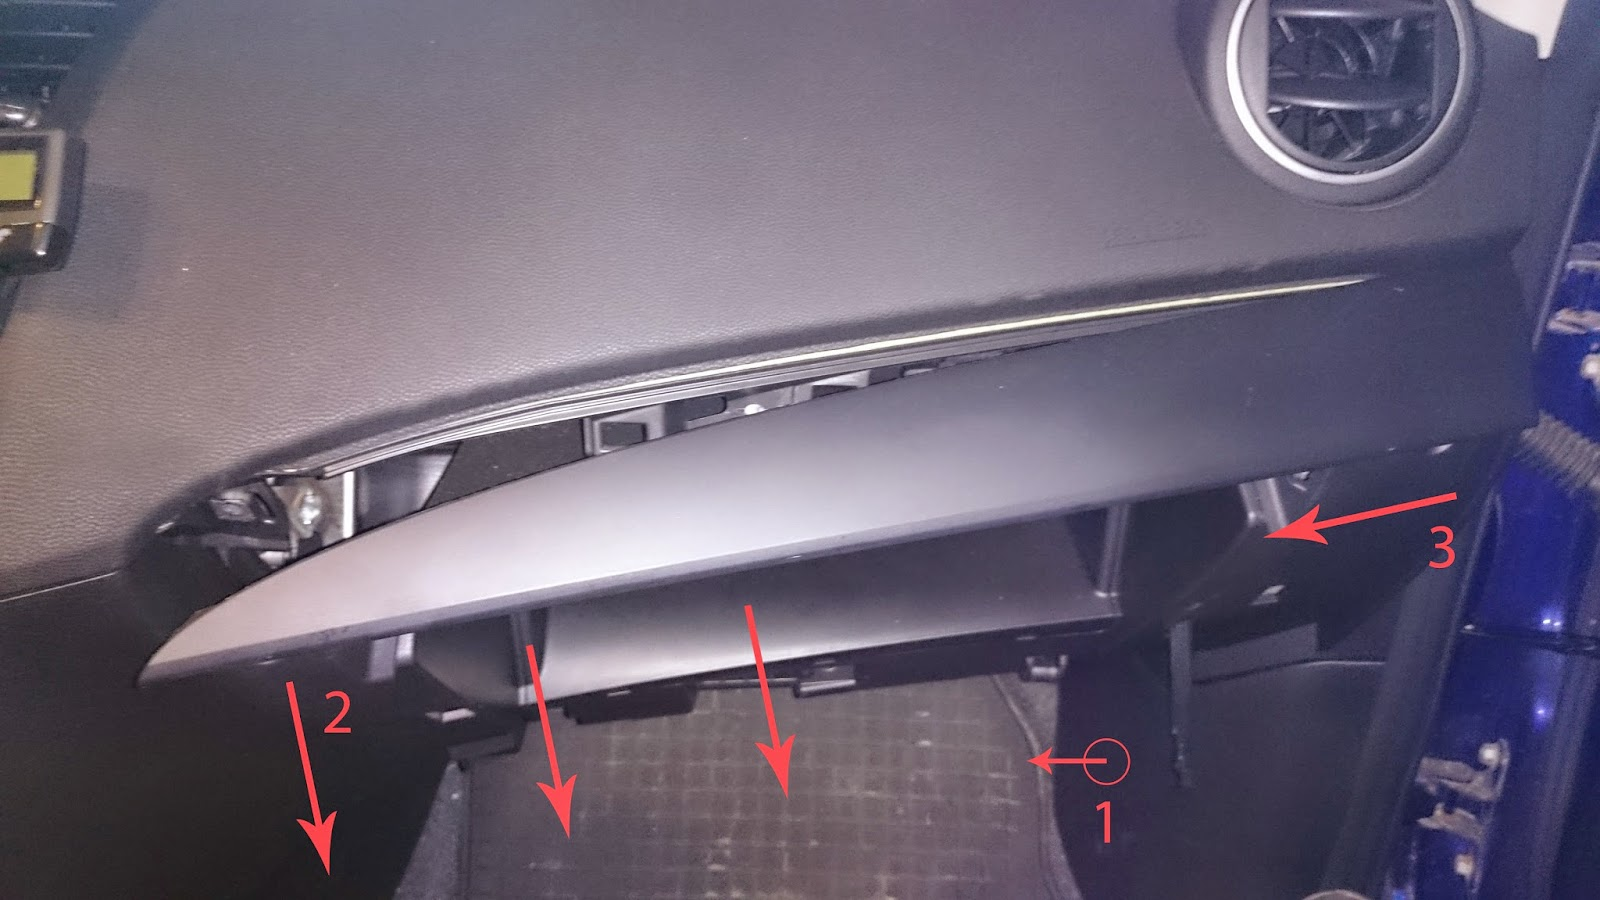 hight resolution of while the screwdriver is in the hole pull it towards you to detach the lower panel you will need some force to do that the dashboard holds together quite